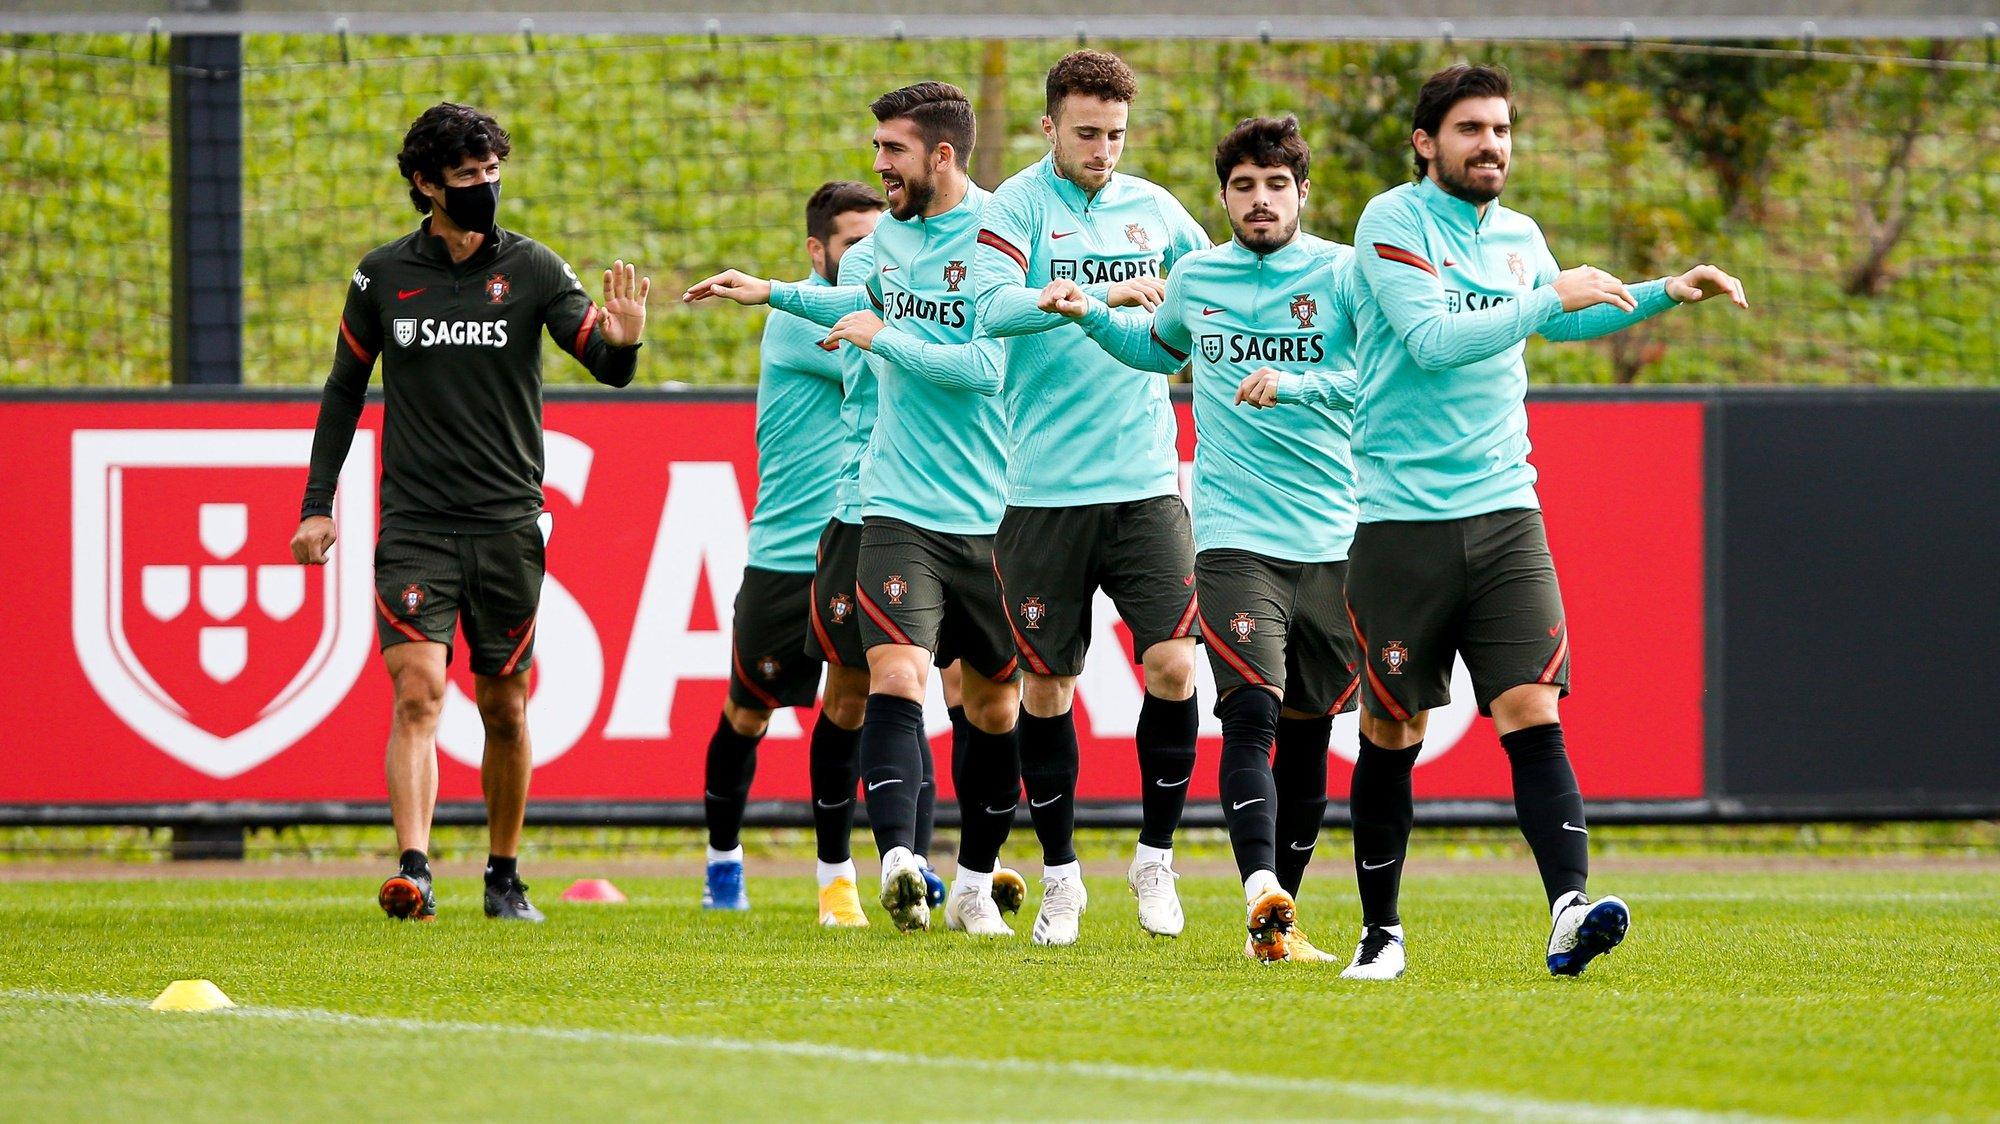 A handout photo made available by Portuguese Football Federation (FPF) shows Portugal players during a training session for the upcoming match with Croacia to be played next Tuesdayy, Oeiras, Portugal, 15th November 2020. FPF/LUSA